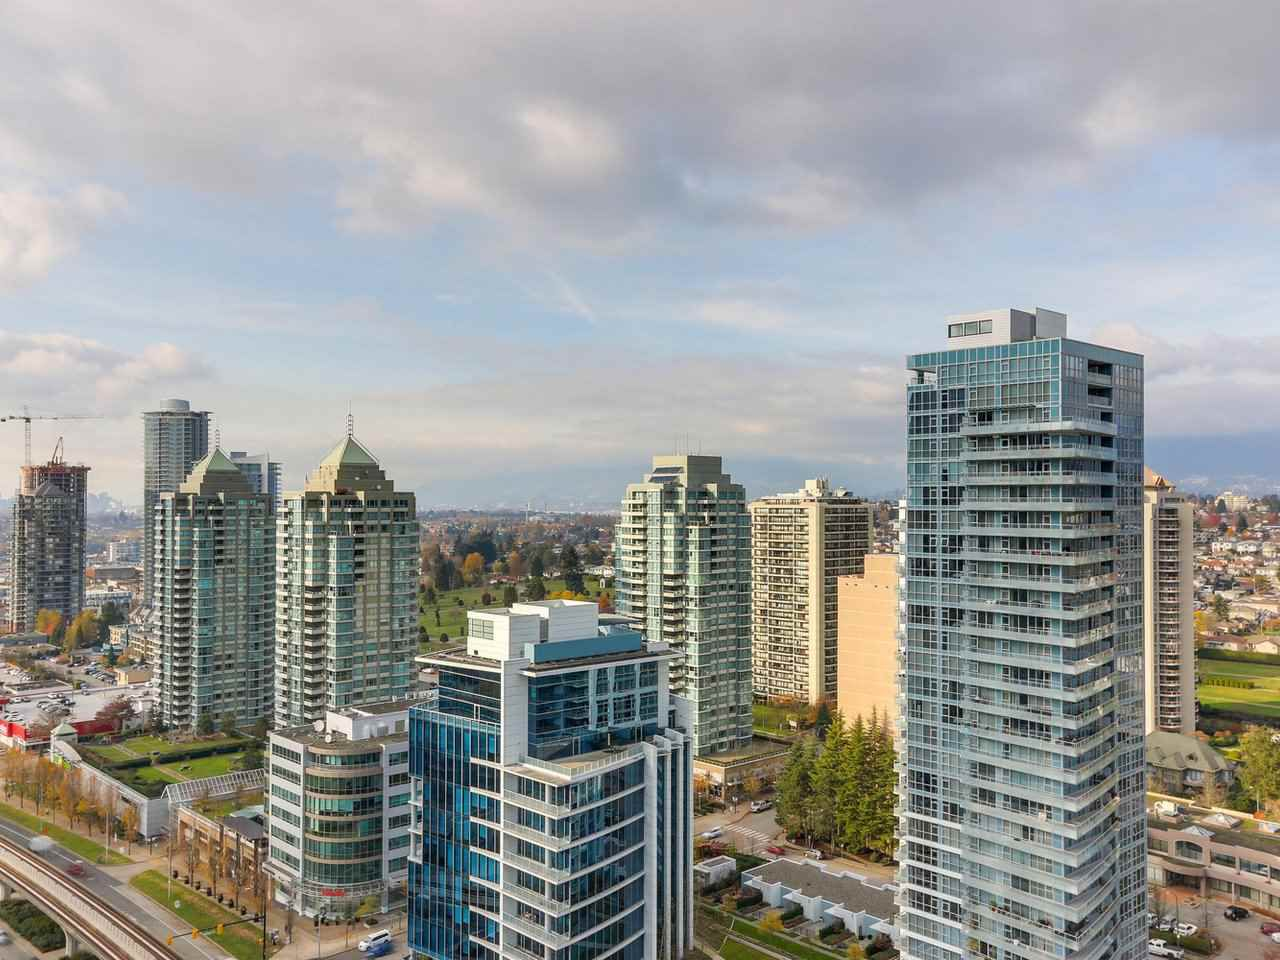 Photo 15: Photos: 1902 4485 SKYLINE Drive in Burnaby: Brentwood Park Condo for sale (Burnaby North)  : MLS®# R2378091